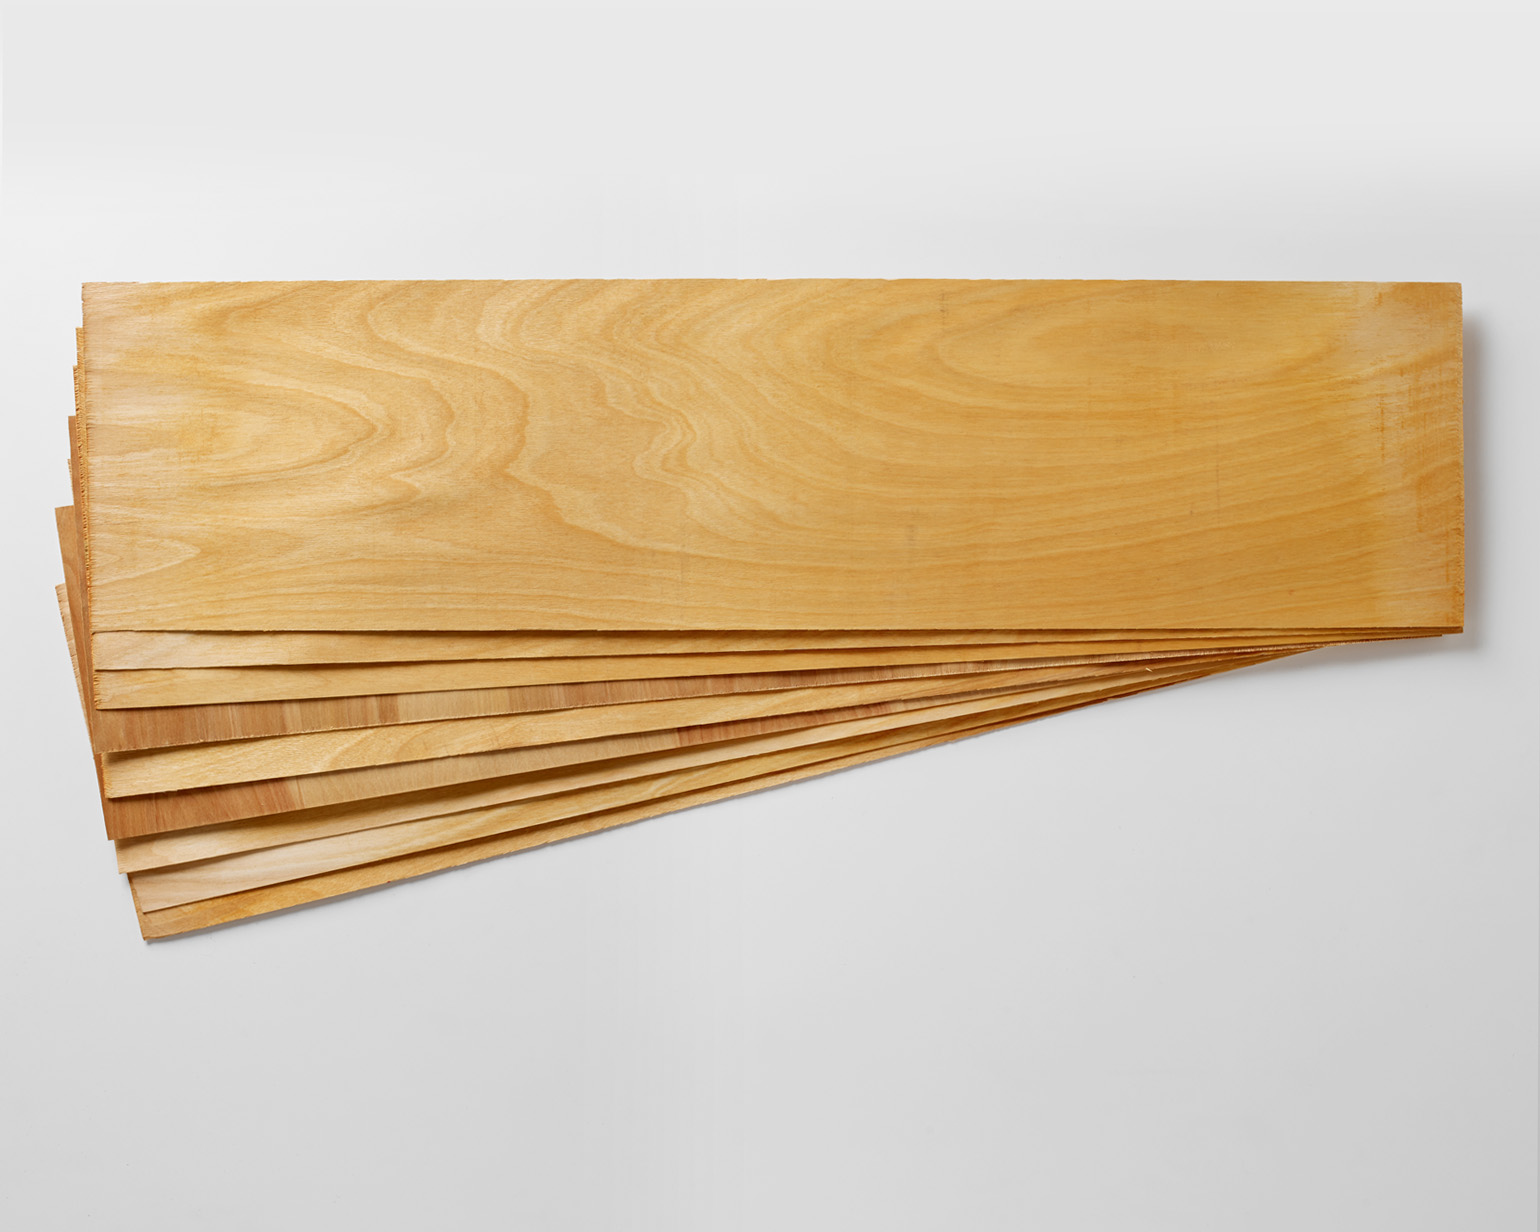 lbb09-birch-long-board-veneer-1540.jpg